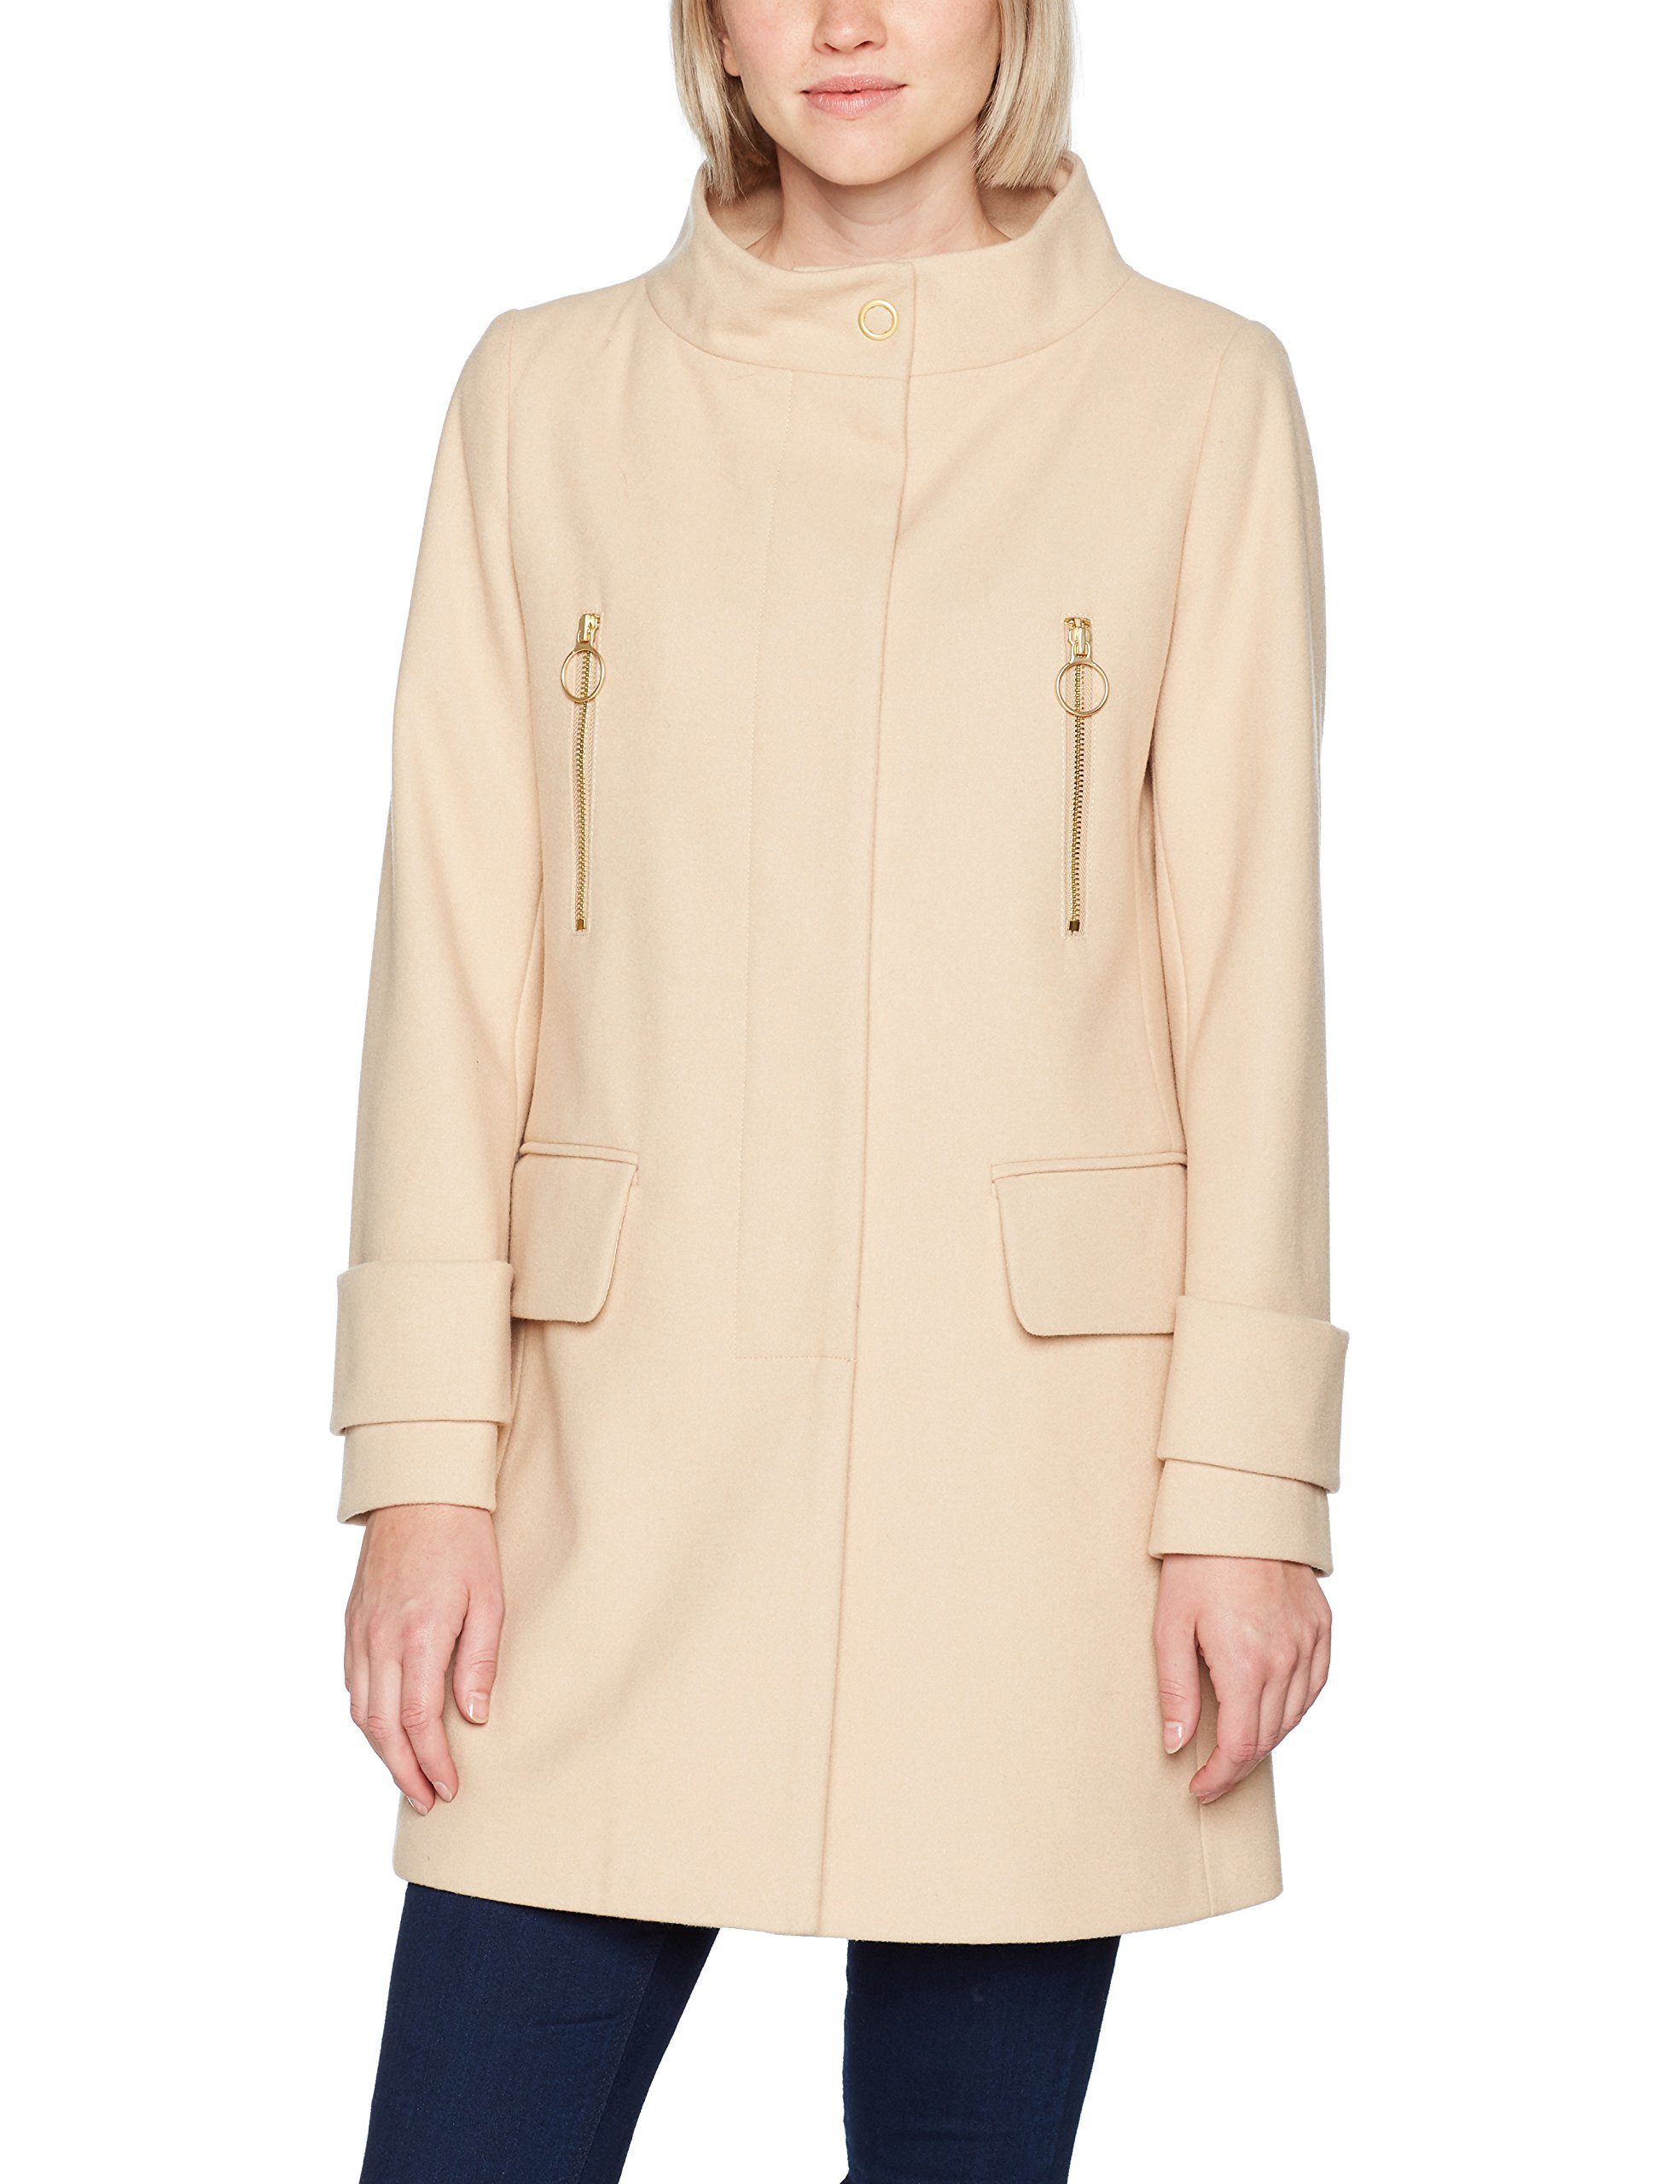 Sisley With Coat Pockets Fabricant46Femme BlouseBeigenude 24nMediumtaille Front hsrCtQd